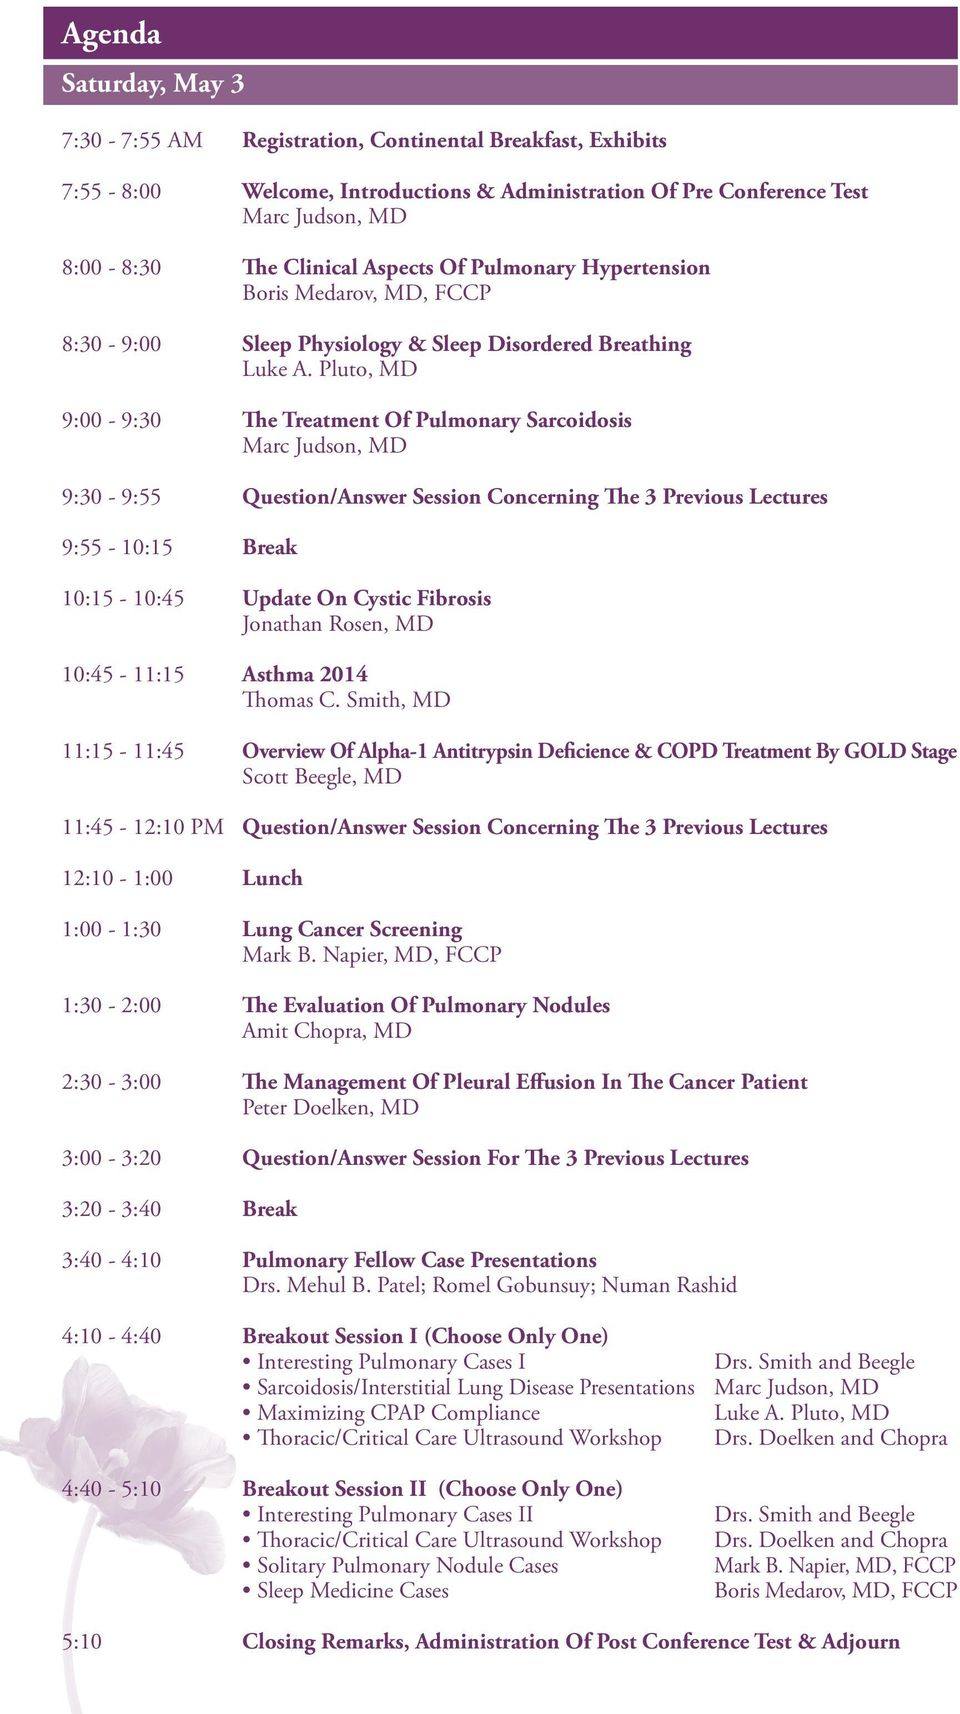 Pluto, MD 9:00-9:30 The Treatment Of Pulmonary Sarcoidosis Marc Judson, MD 9:30-9:55 Question/Answer Session Concerning The 3 Previous Lectures 9:55-10:15 Break 10:15-10:45 Update On Cystic Fibrosis